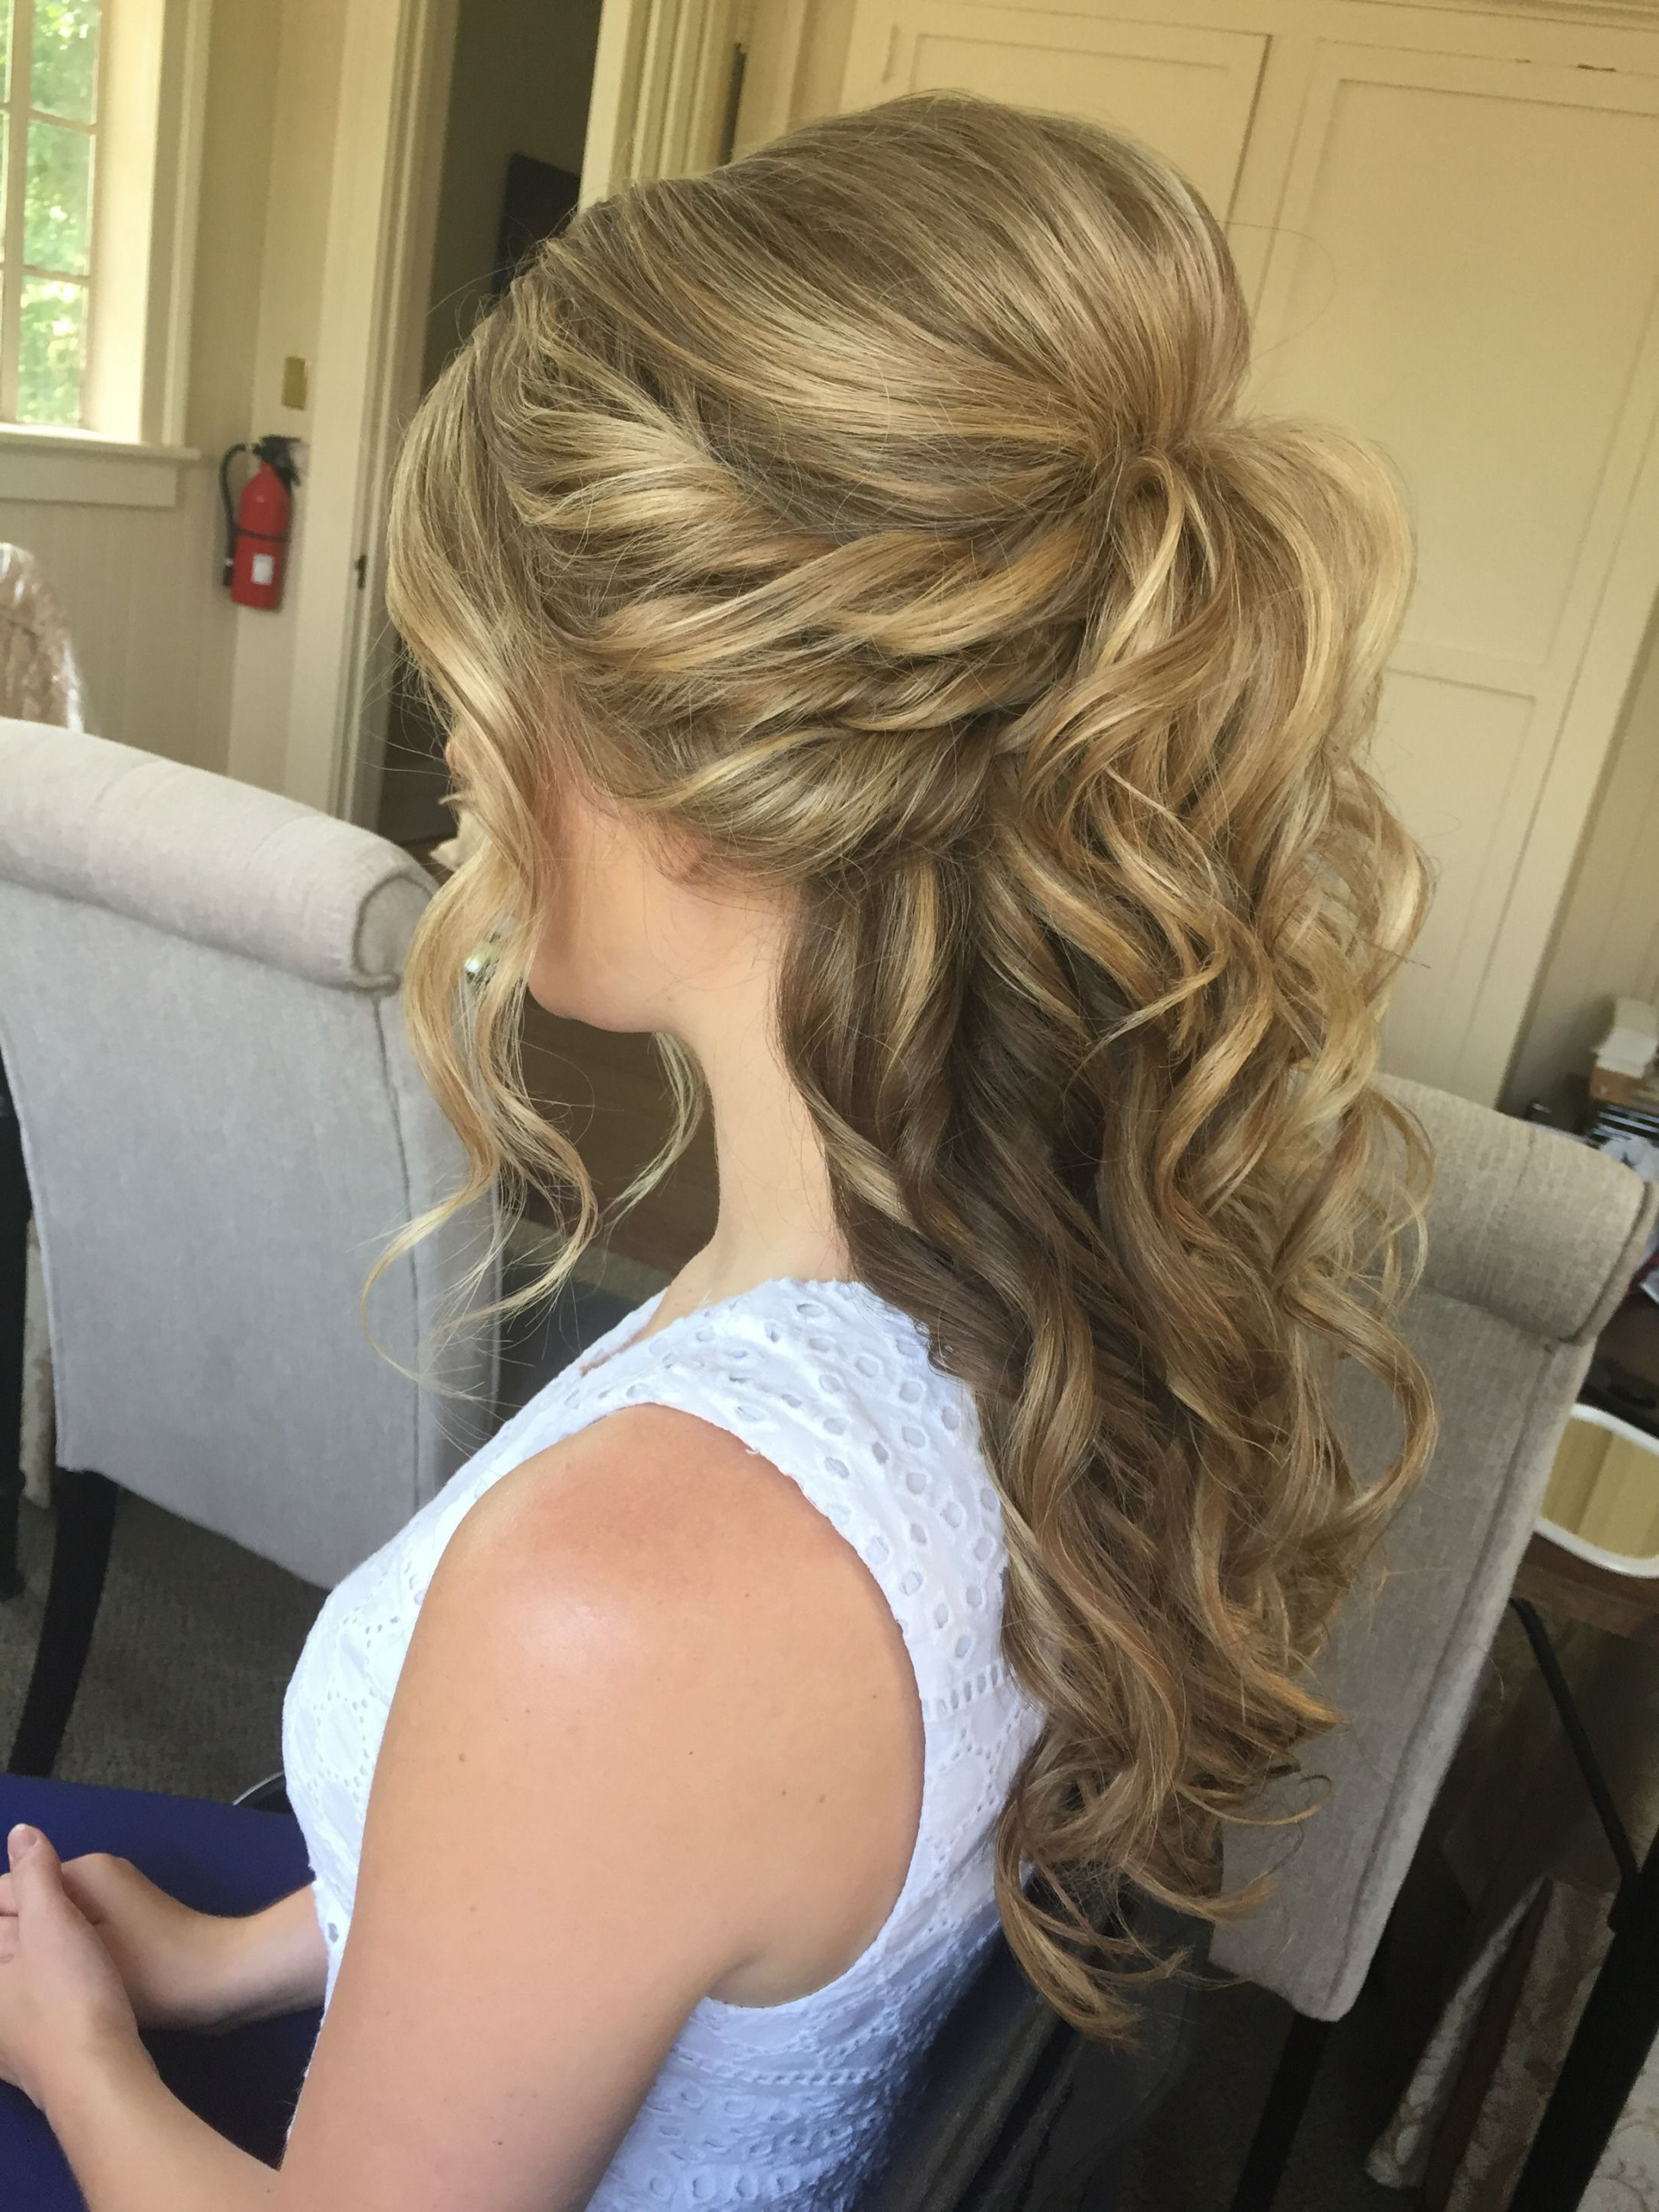 Newest Down Medium Hairstyles Regarding Image Result For Wedding Hairstyles Half Up Half Down Medium Length (View 15 of 20)